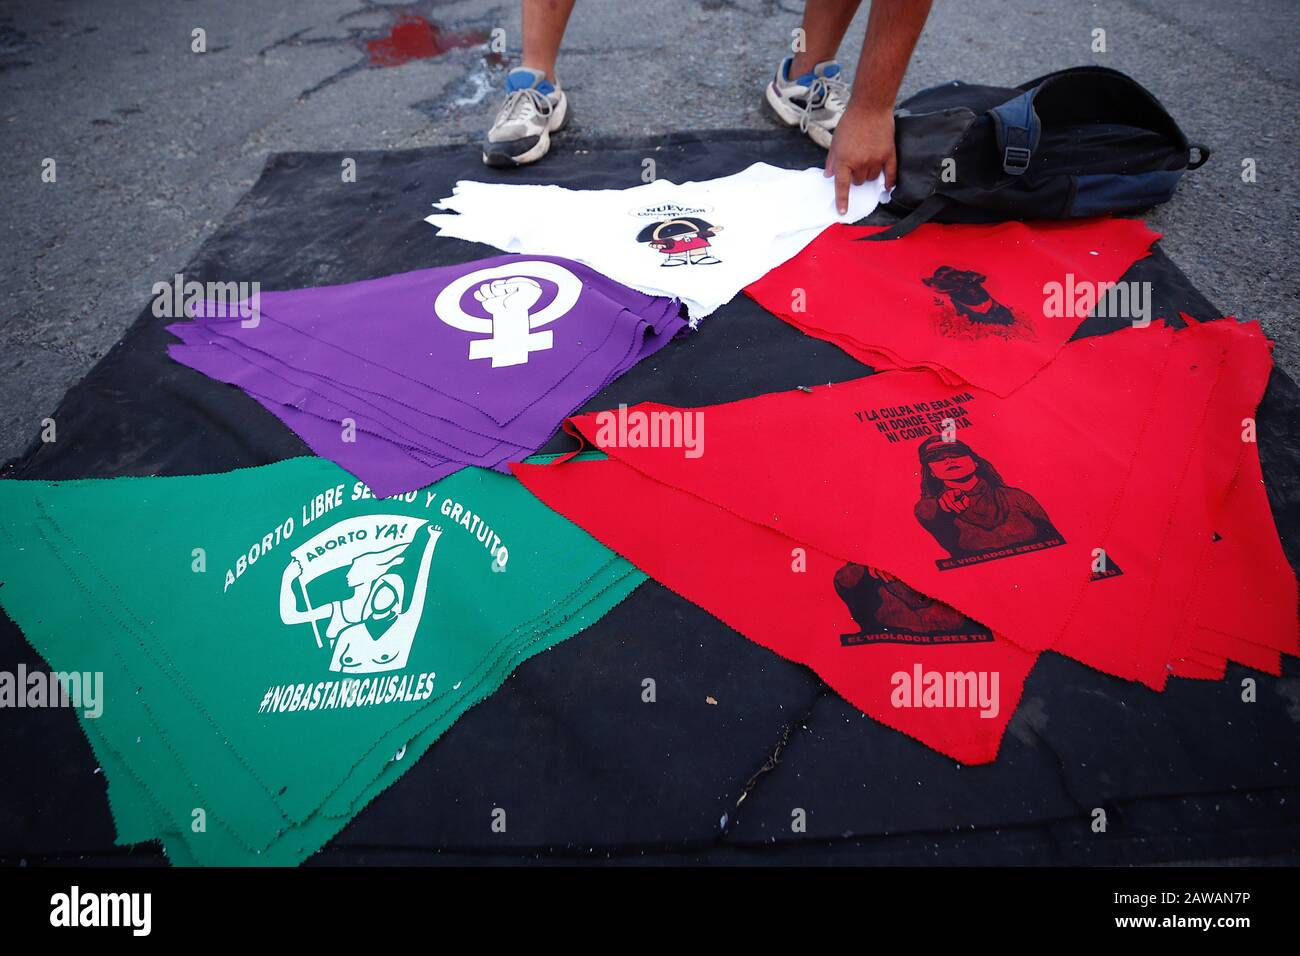 A Street Stall Selling Vindictive Scarves Is Seen During A New Day Of Protests In Plaza